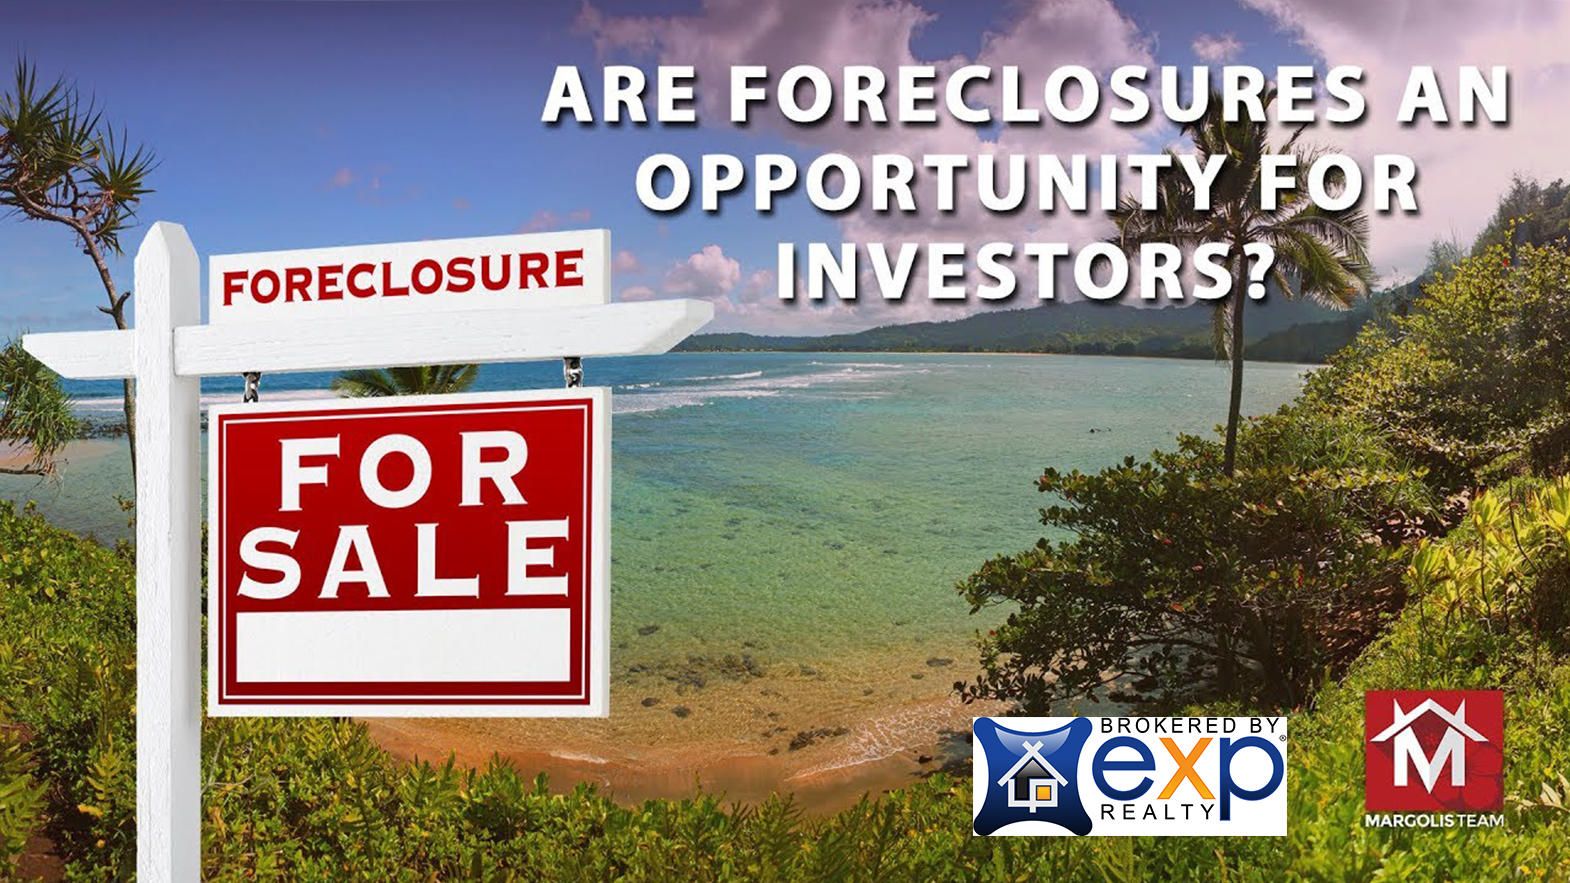 Investors: Have You Considered Purchasing a Foreclosure Property?